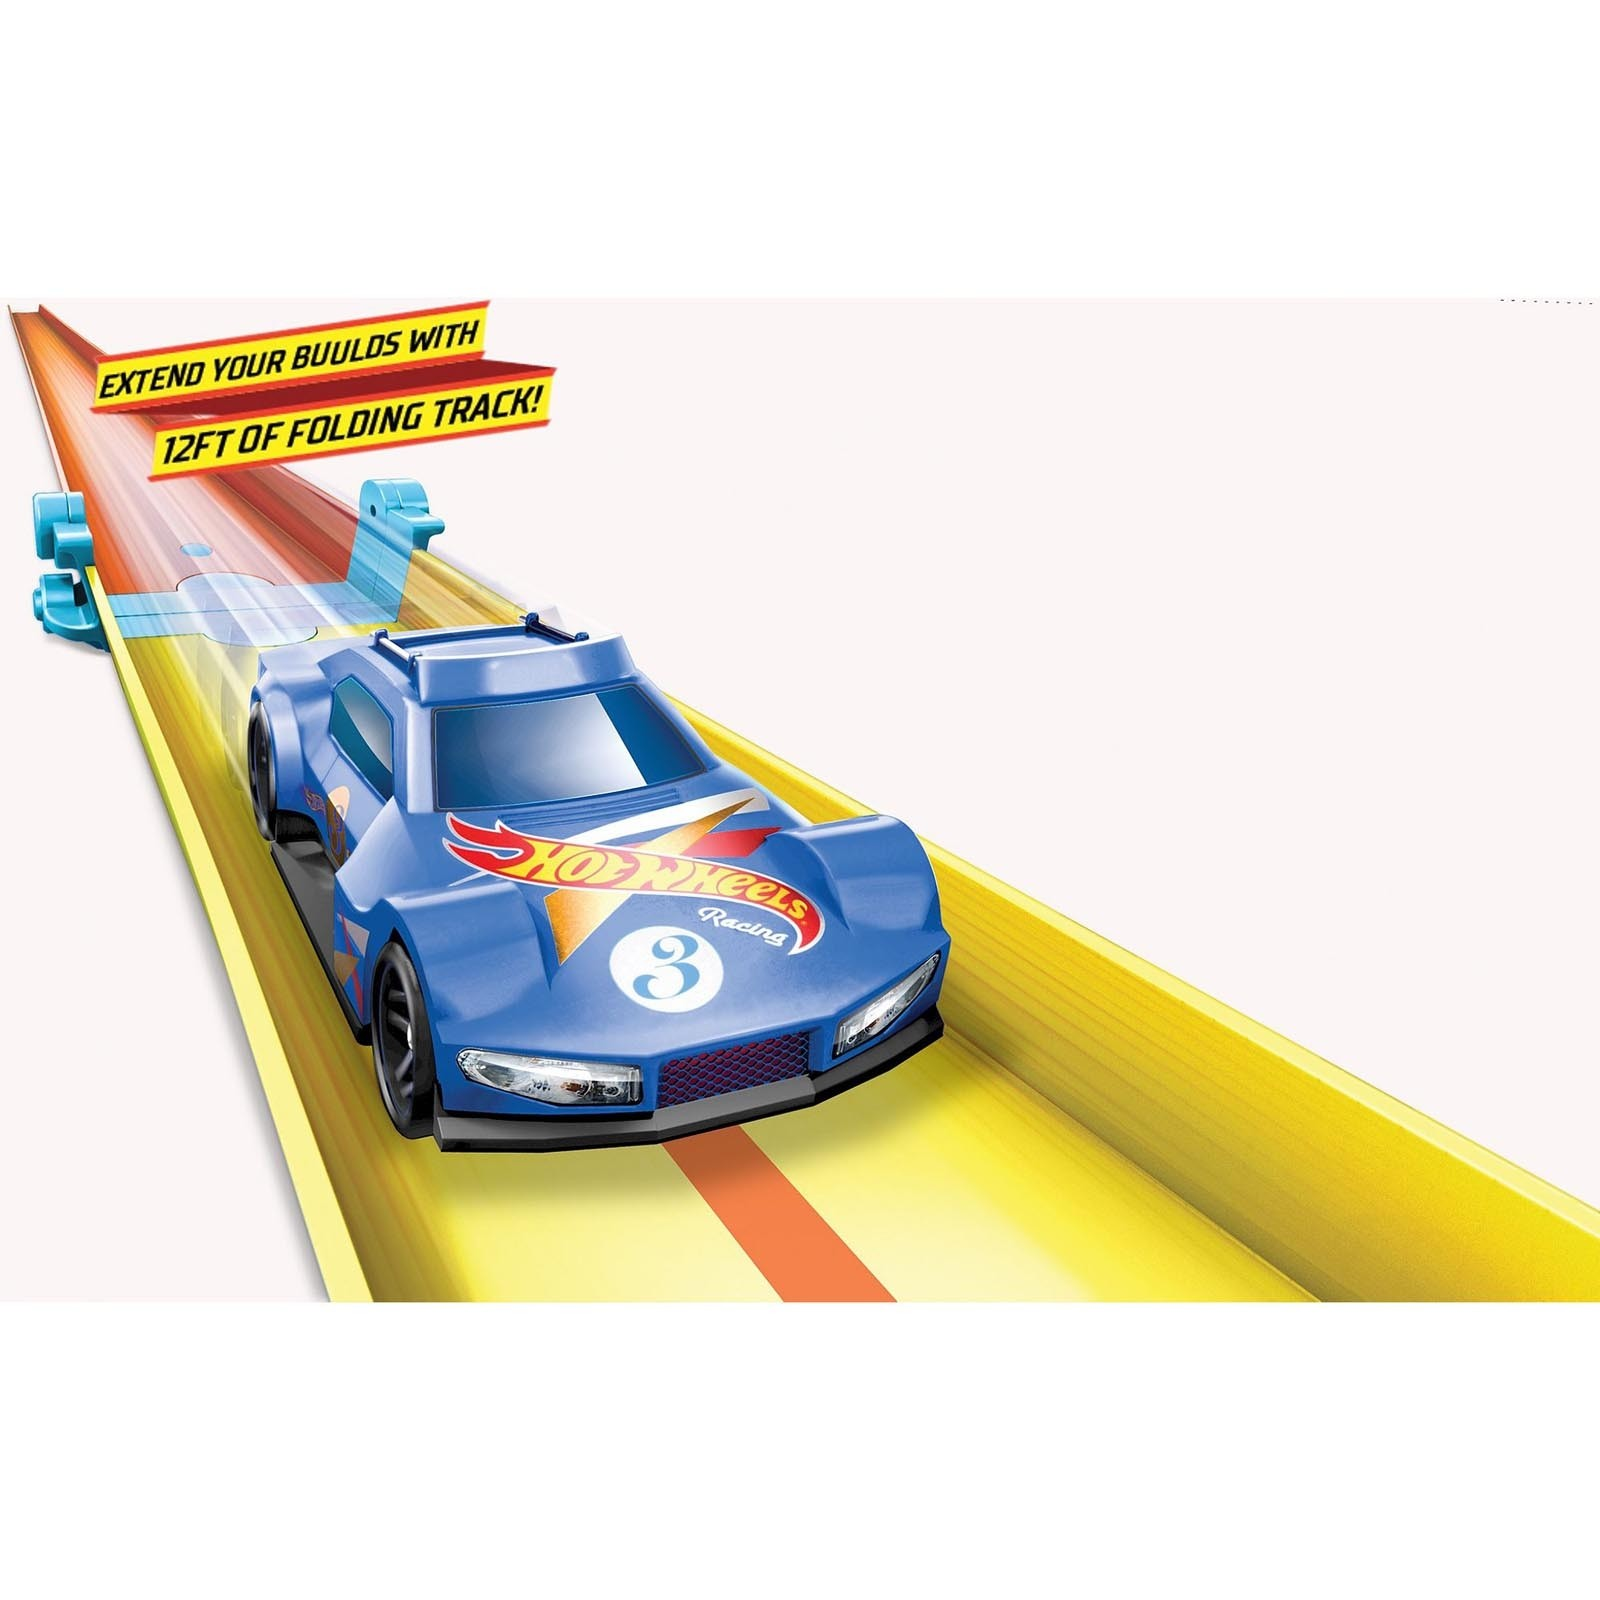 Conjunto de Pista Dobrável Hot Wheels - Track & Builder Unlimited - GLC91